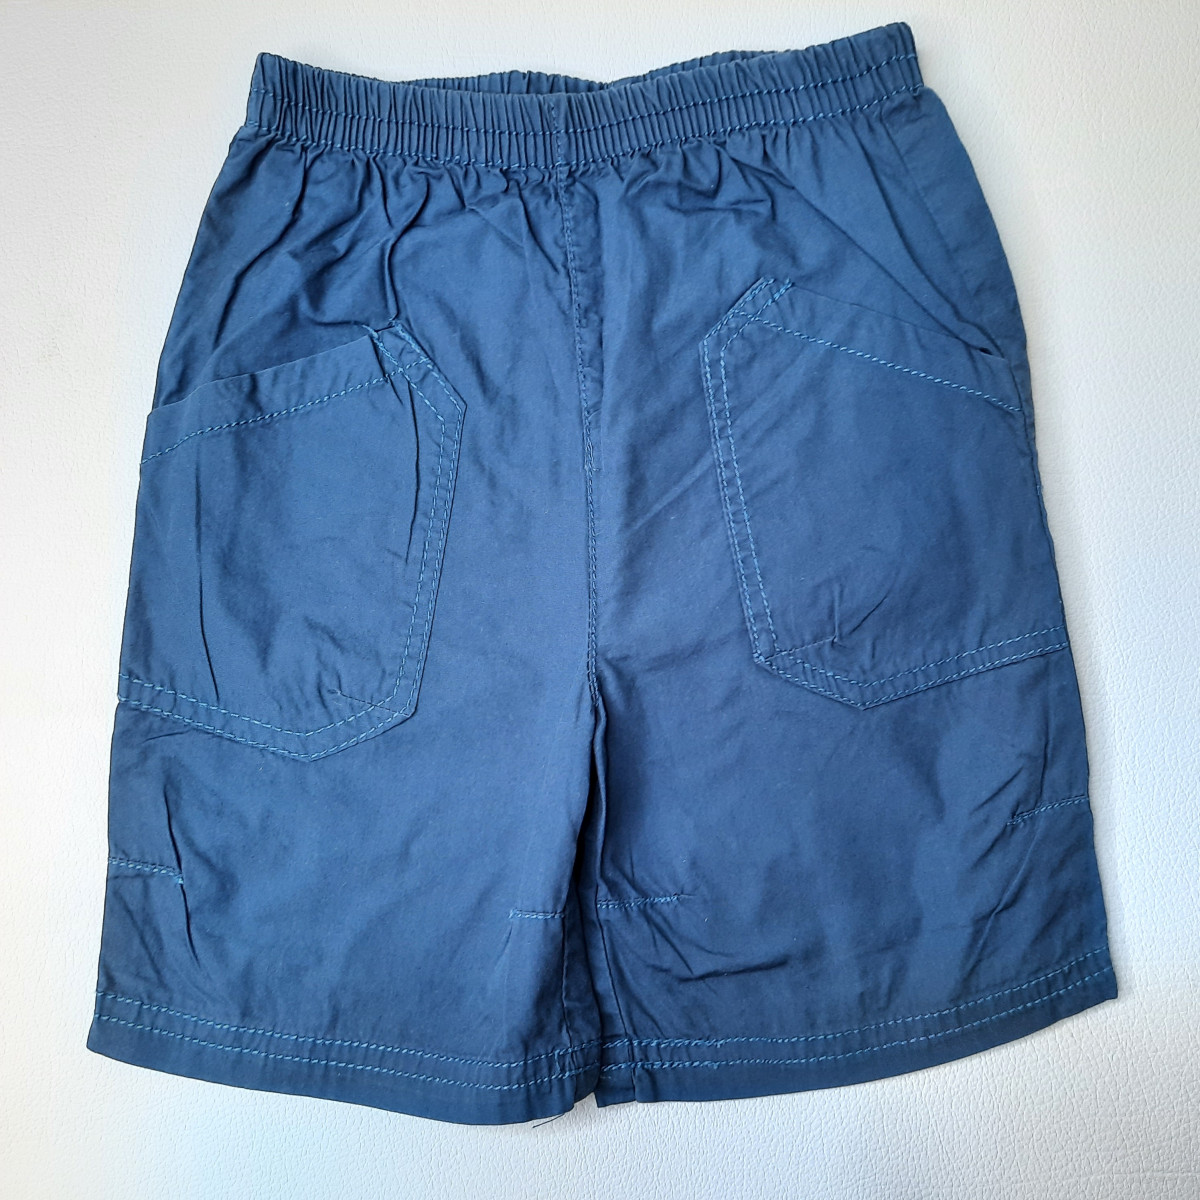 Shorts, Bermudas - photo 30